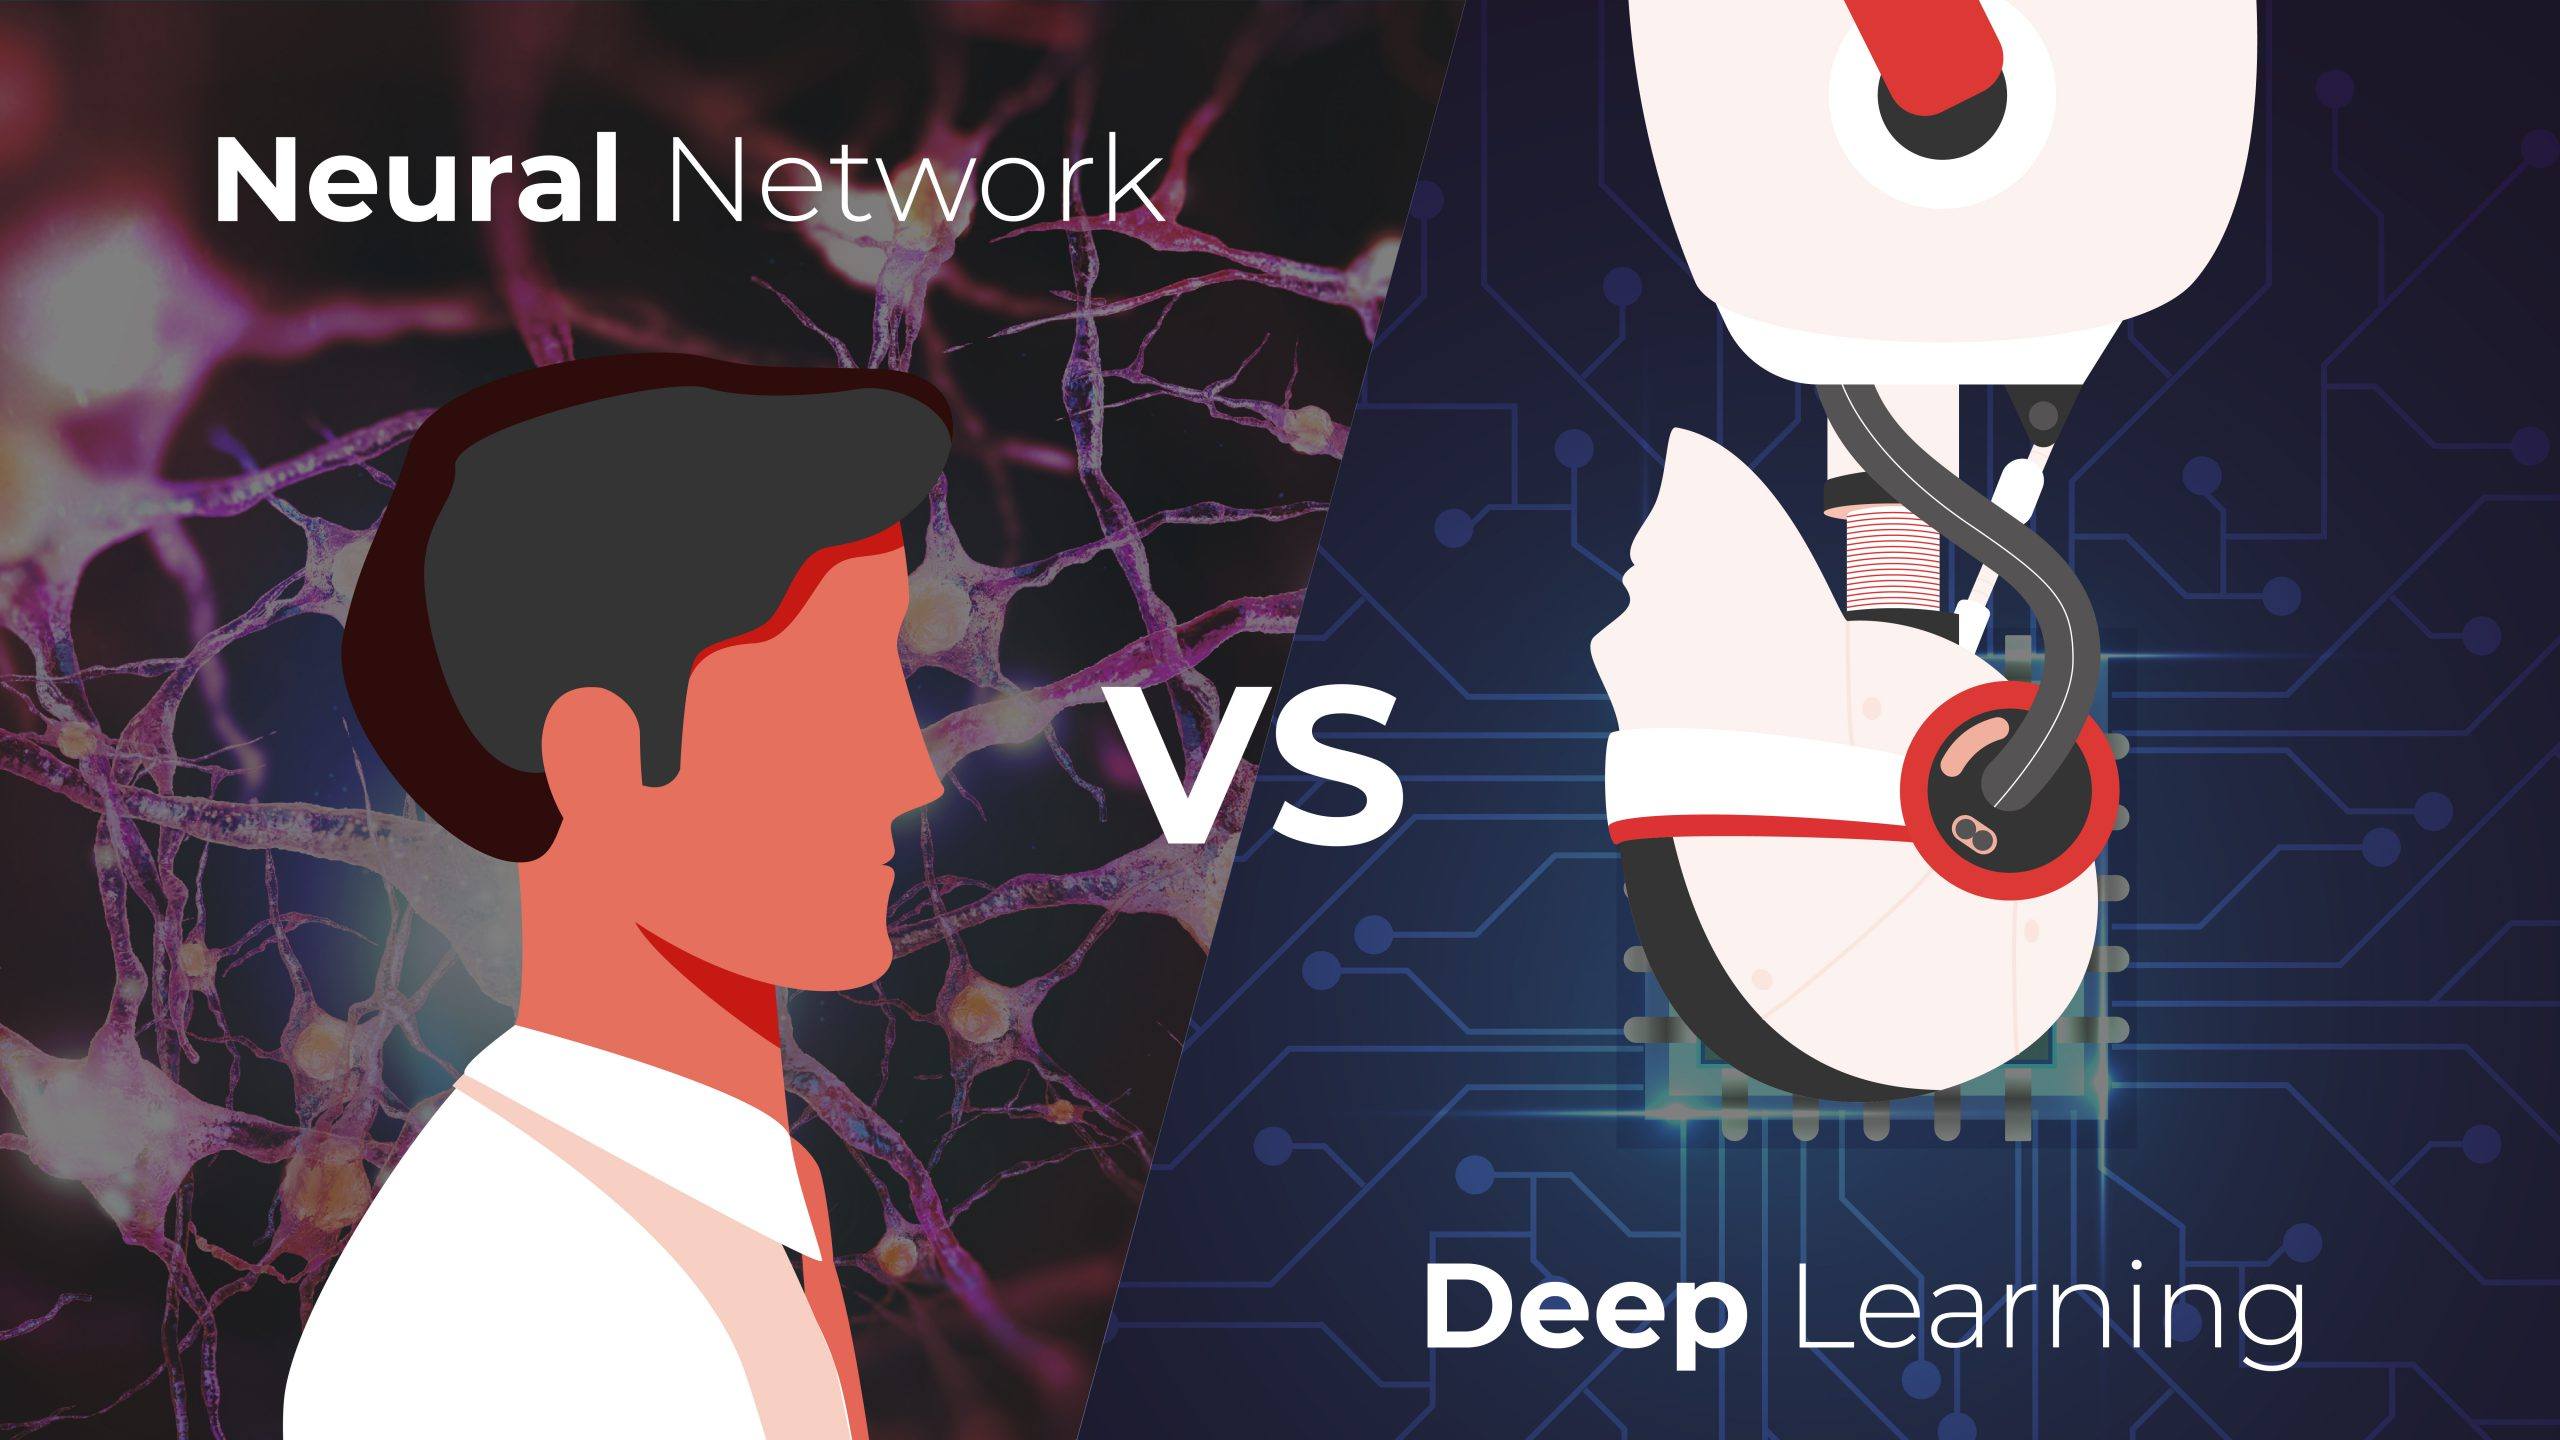 Deep Learning vs Neural Network: What's the Difference?